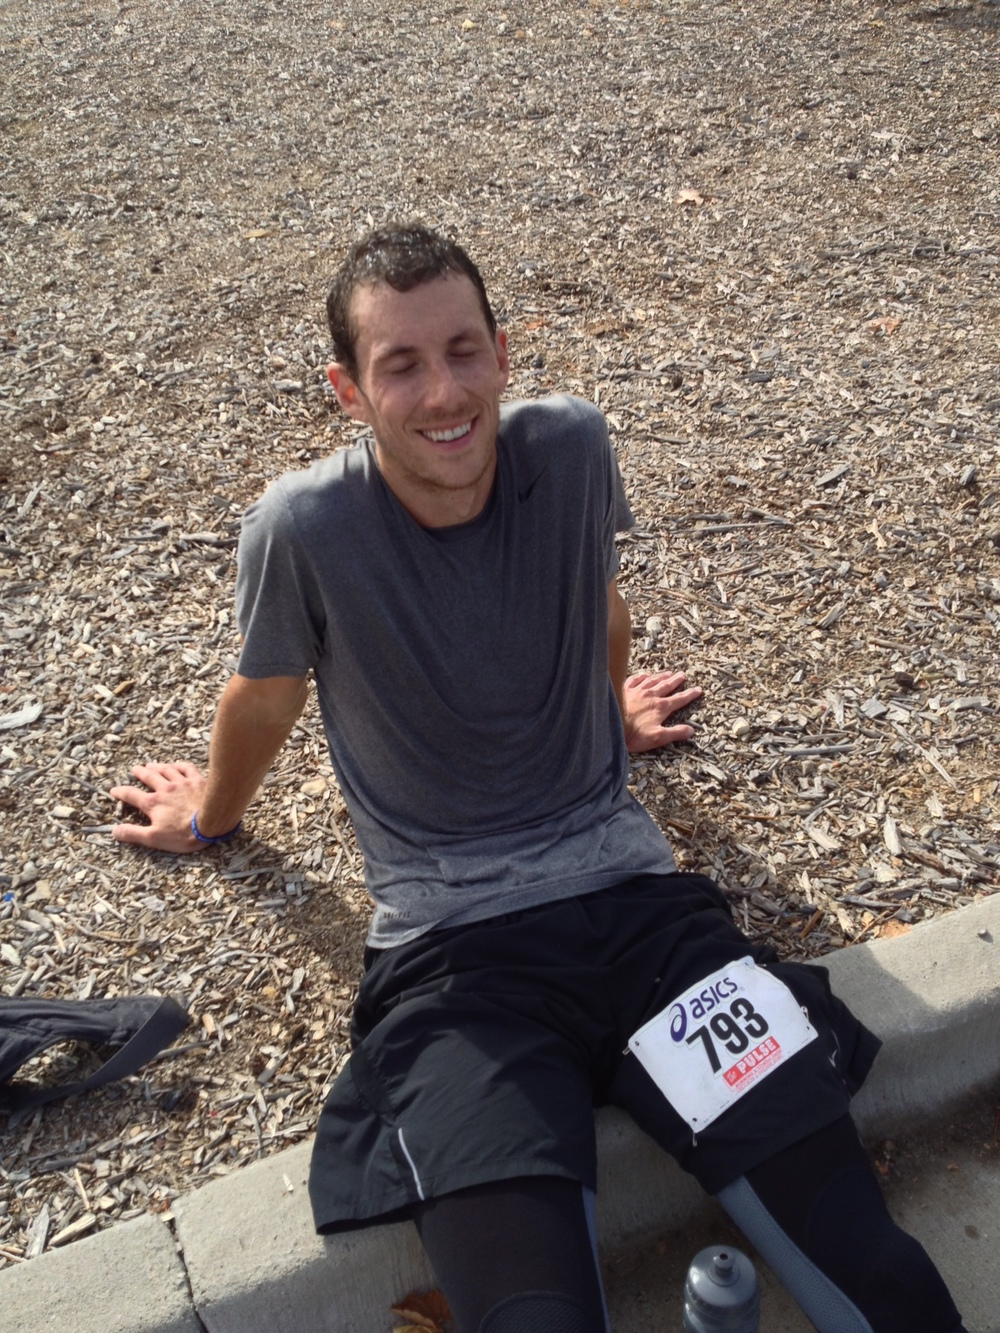 The unfettered joy (and pain!) of the hard-earned finish.